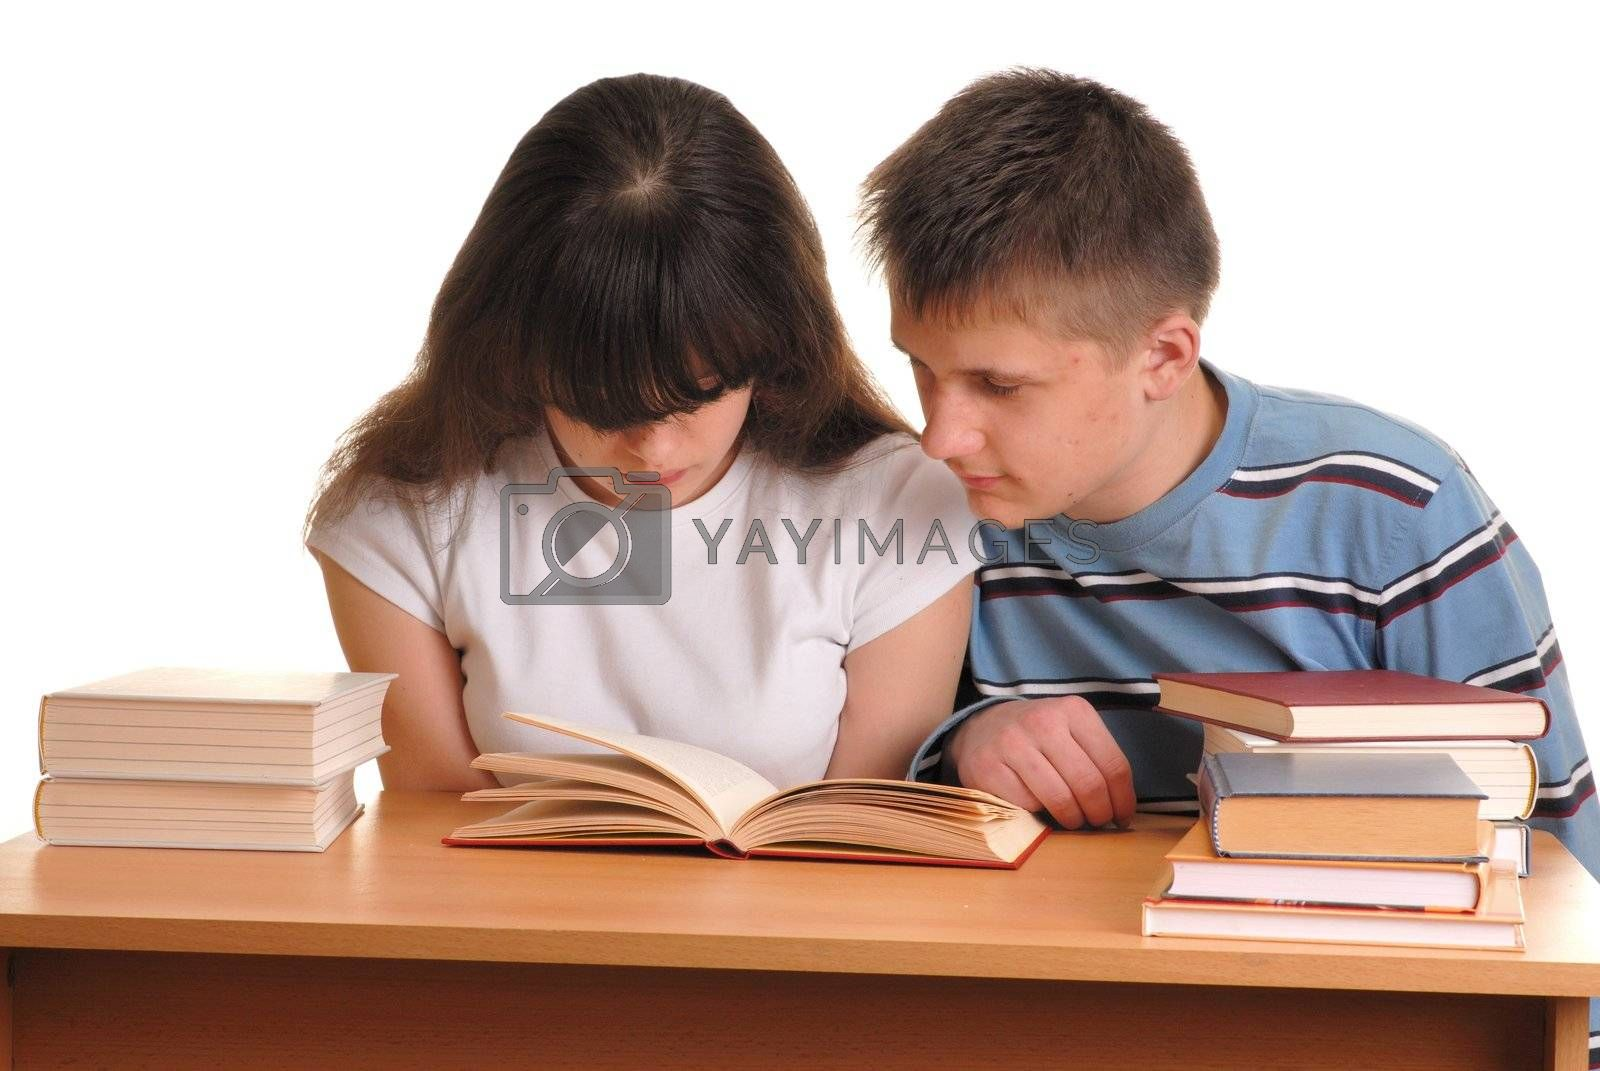 Teen sitting at desk and reading books